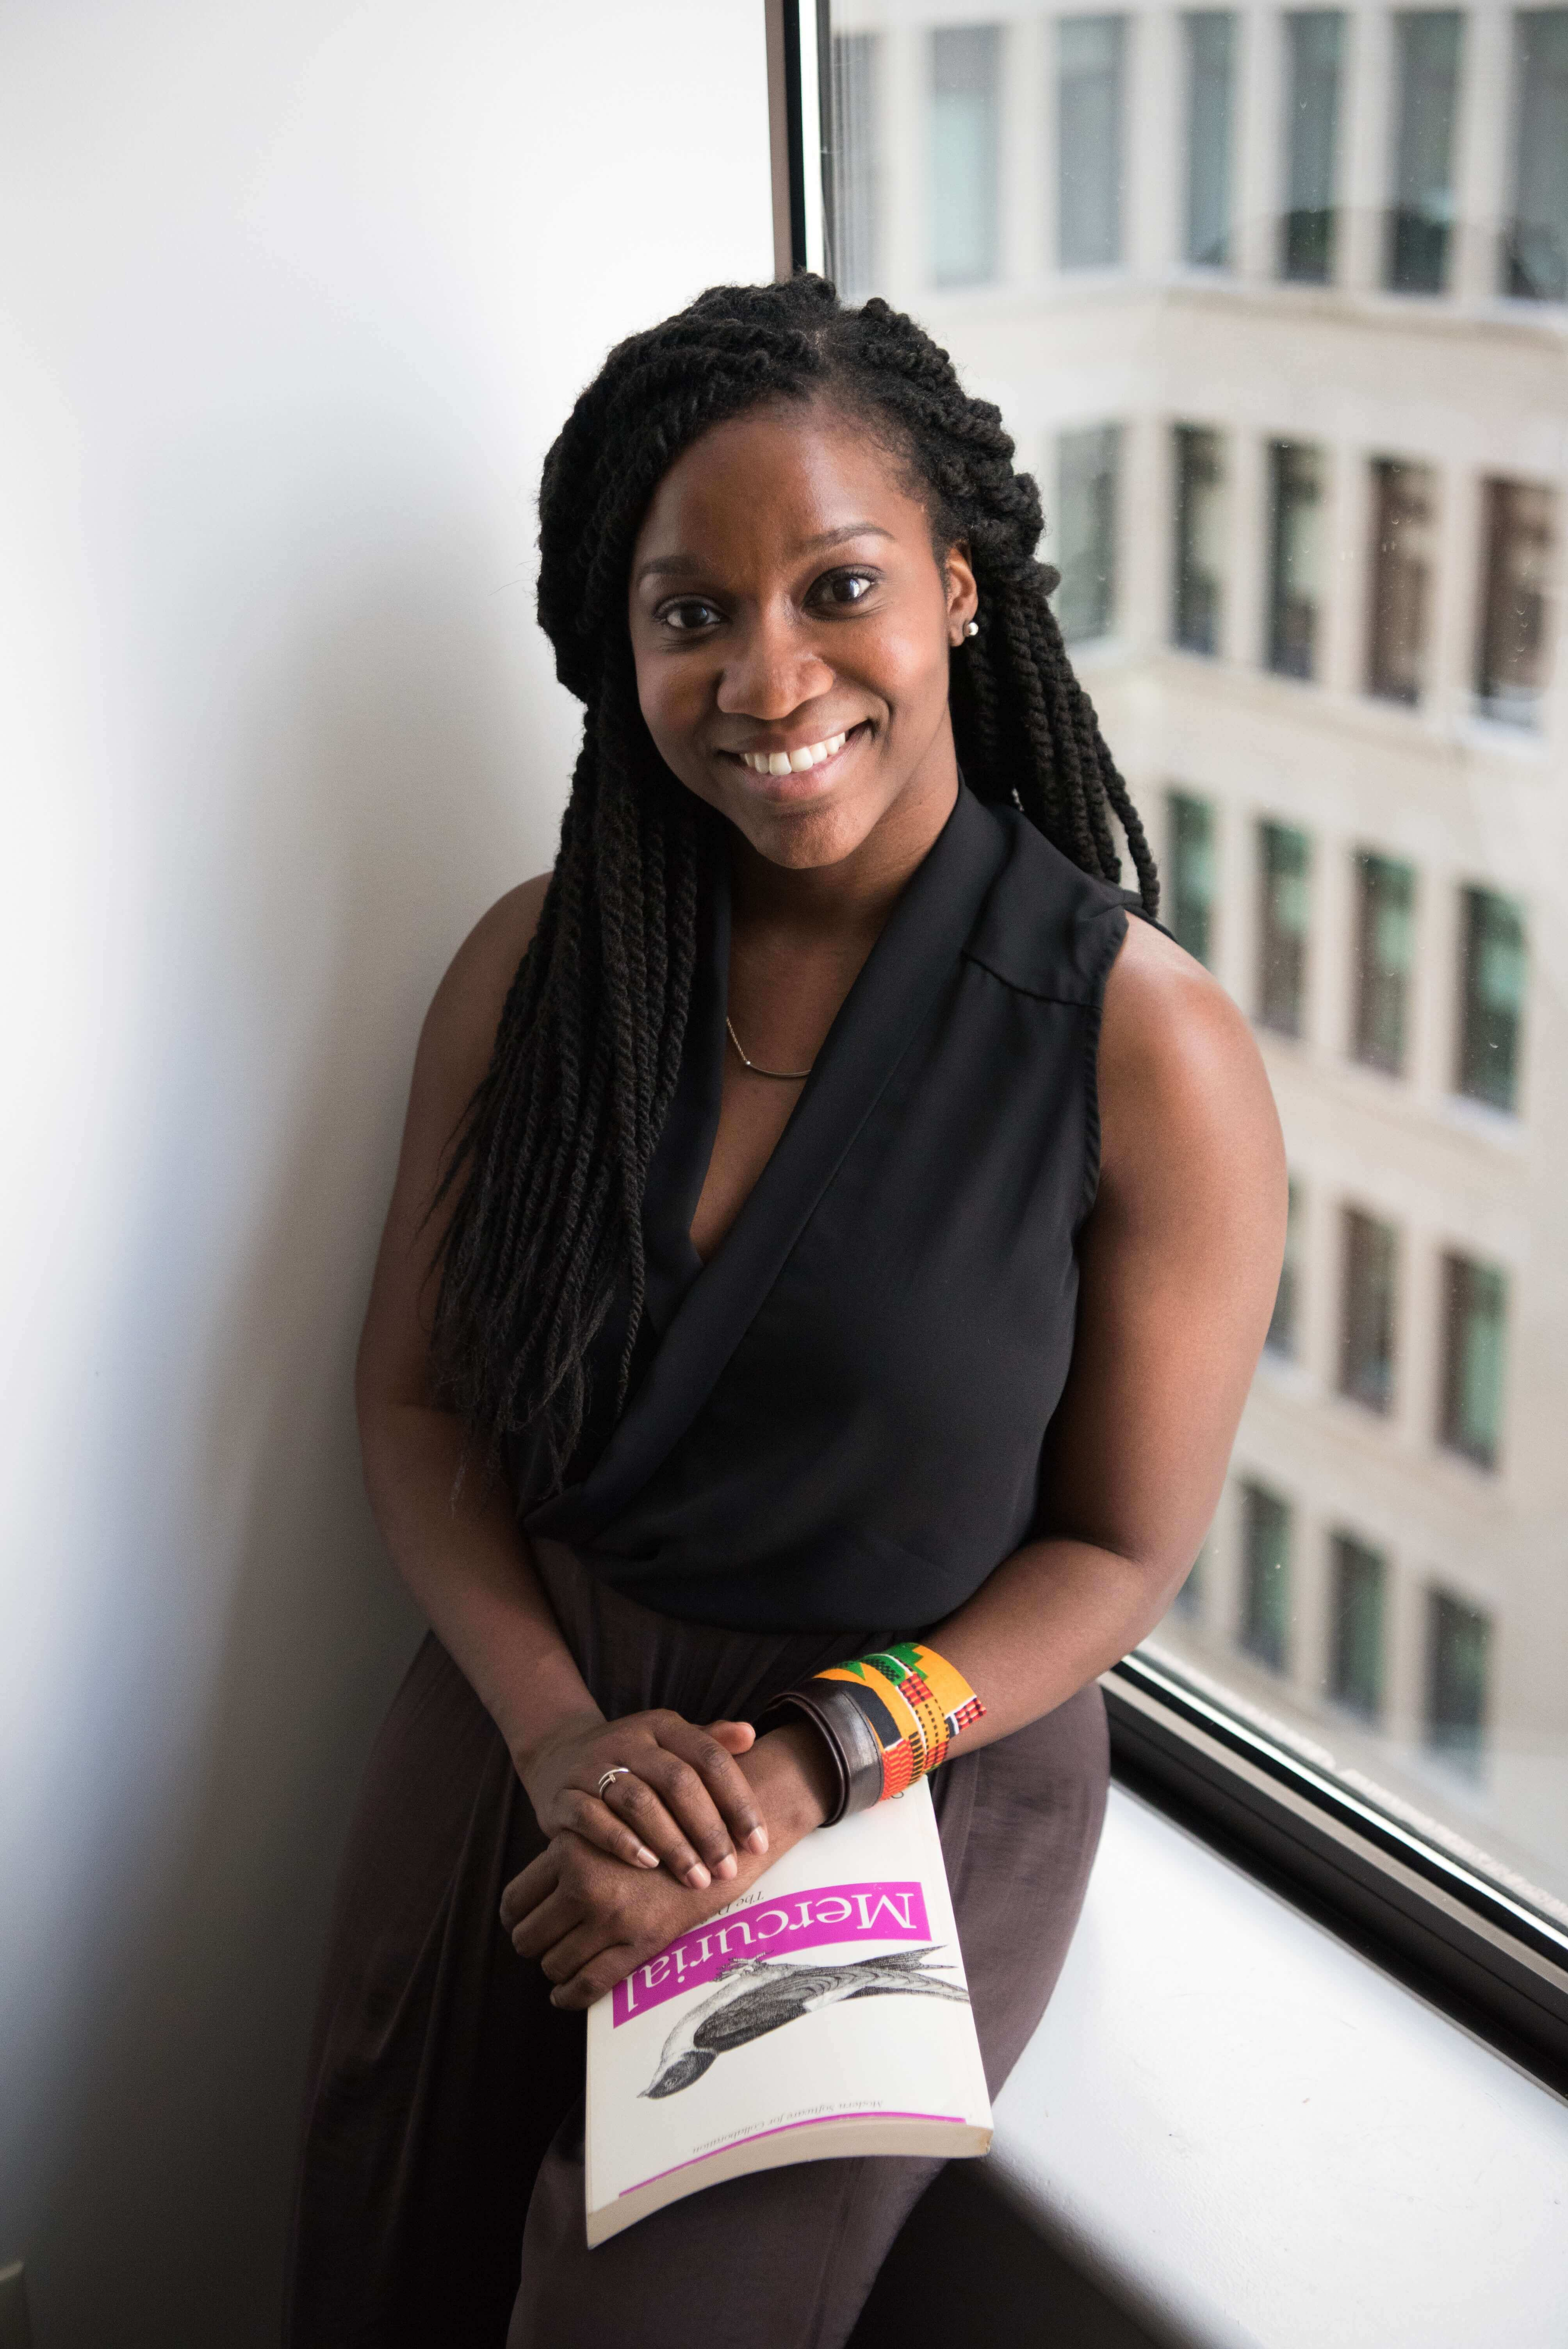 a smiling black women sitting in the window with the book